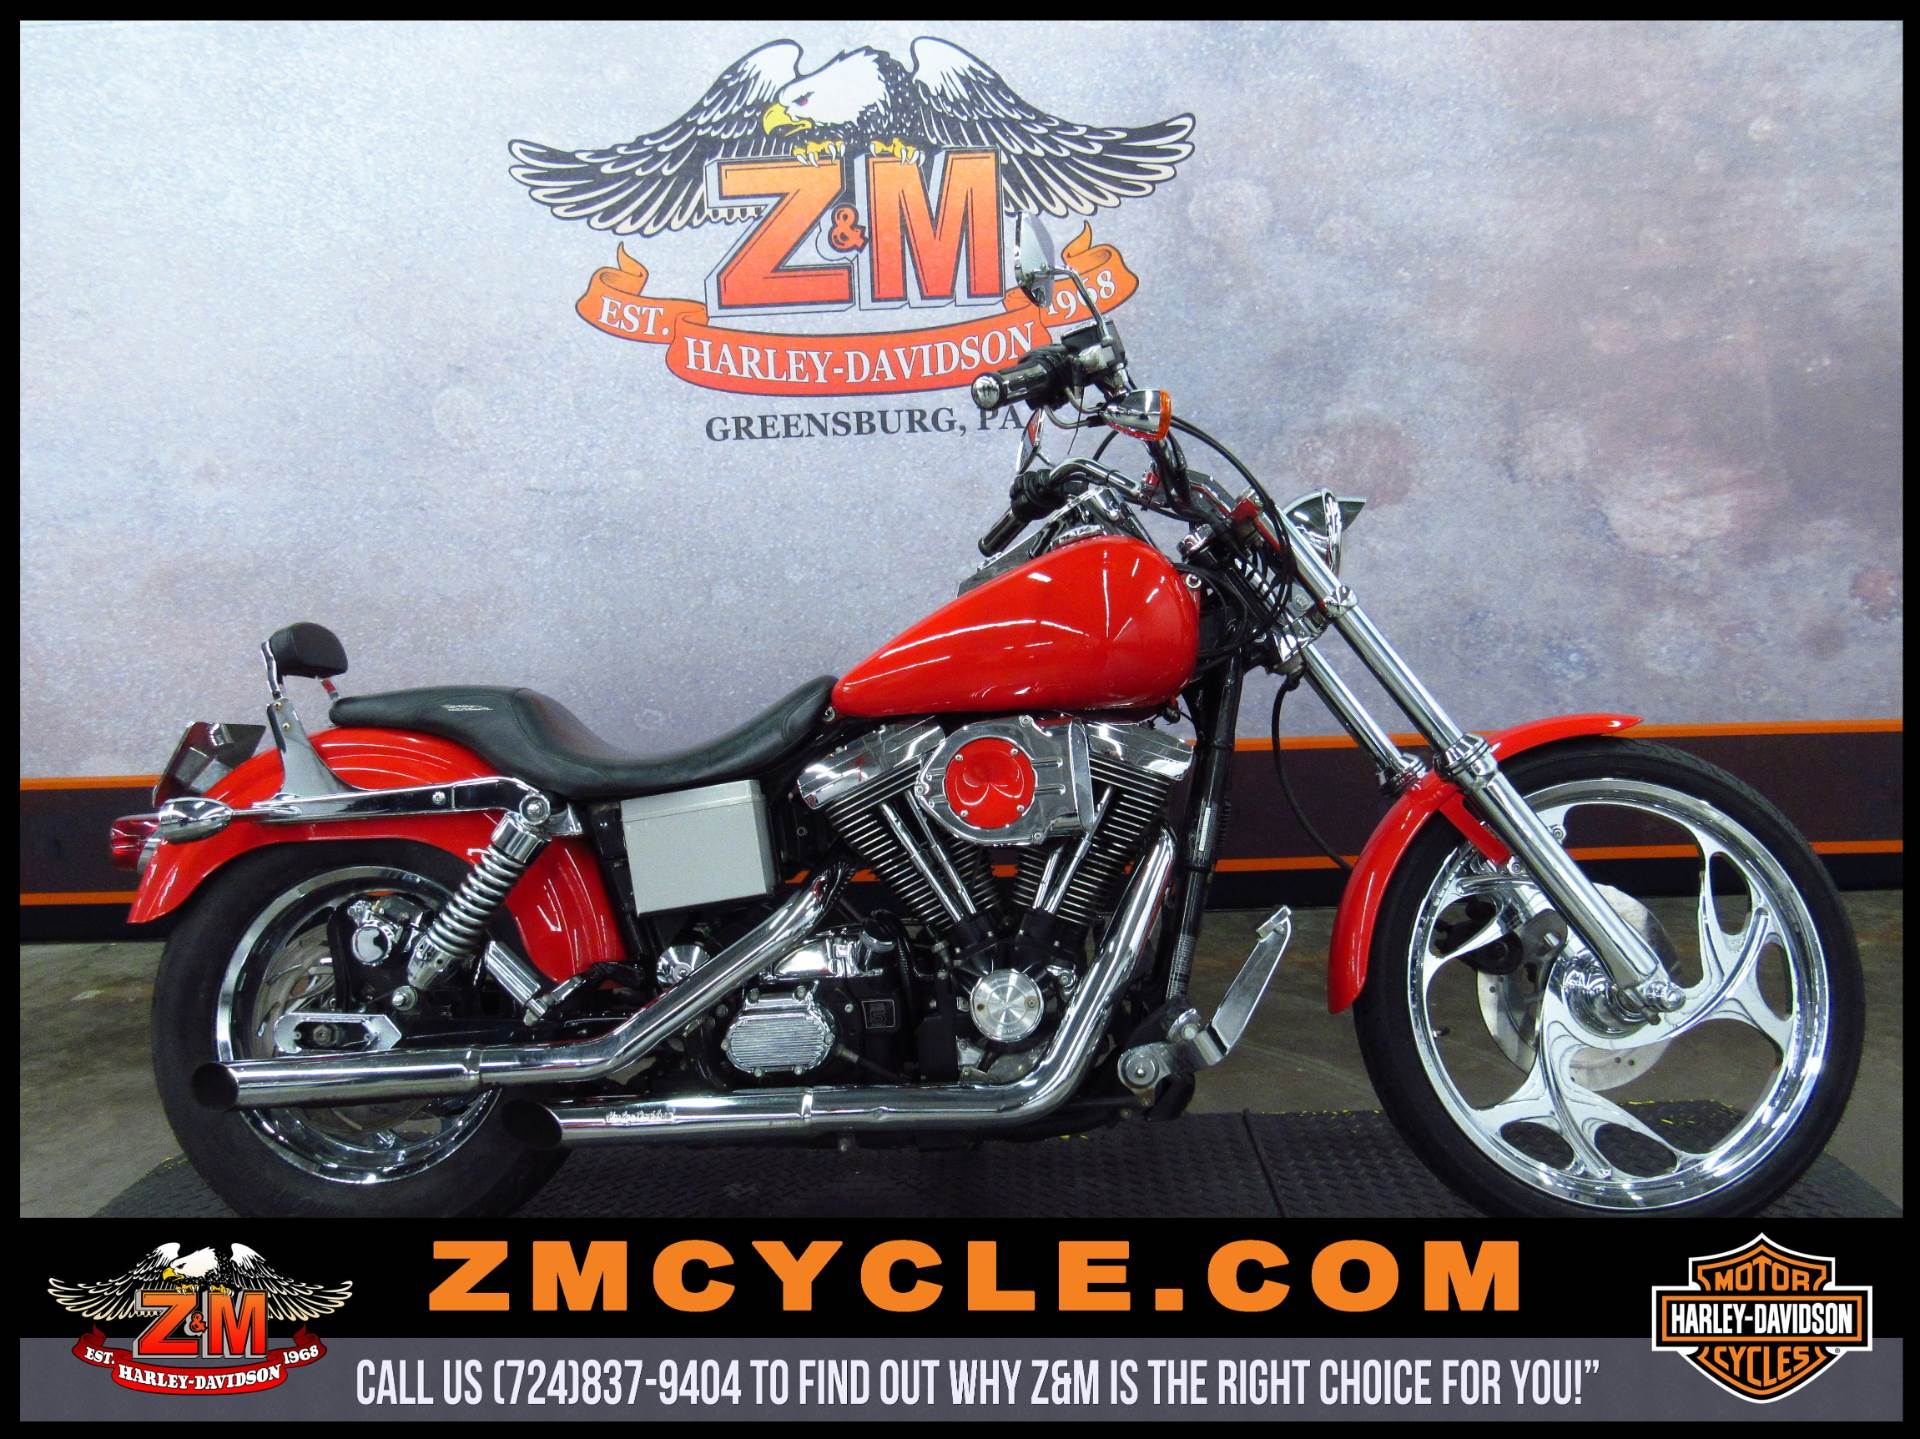 1997 Dyna Wide Glide FXDWG